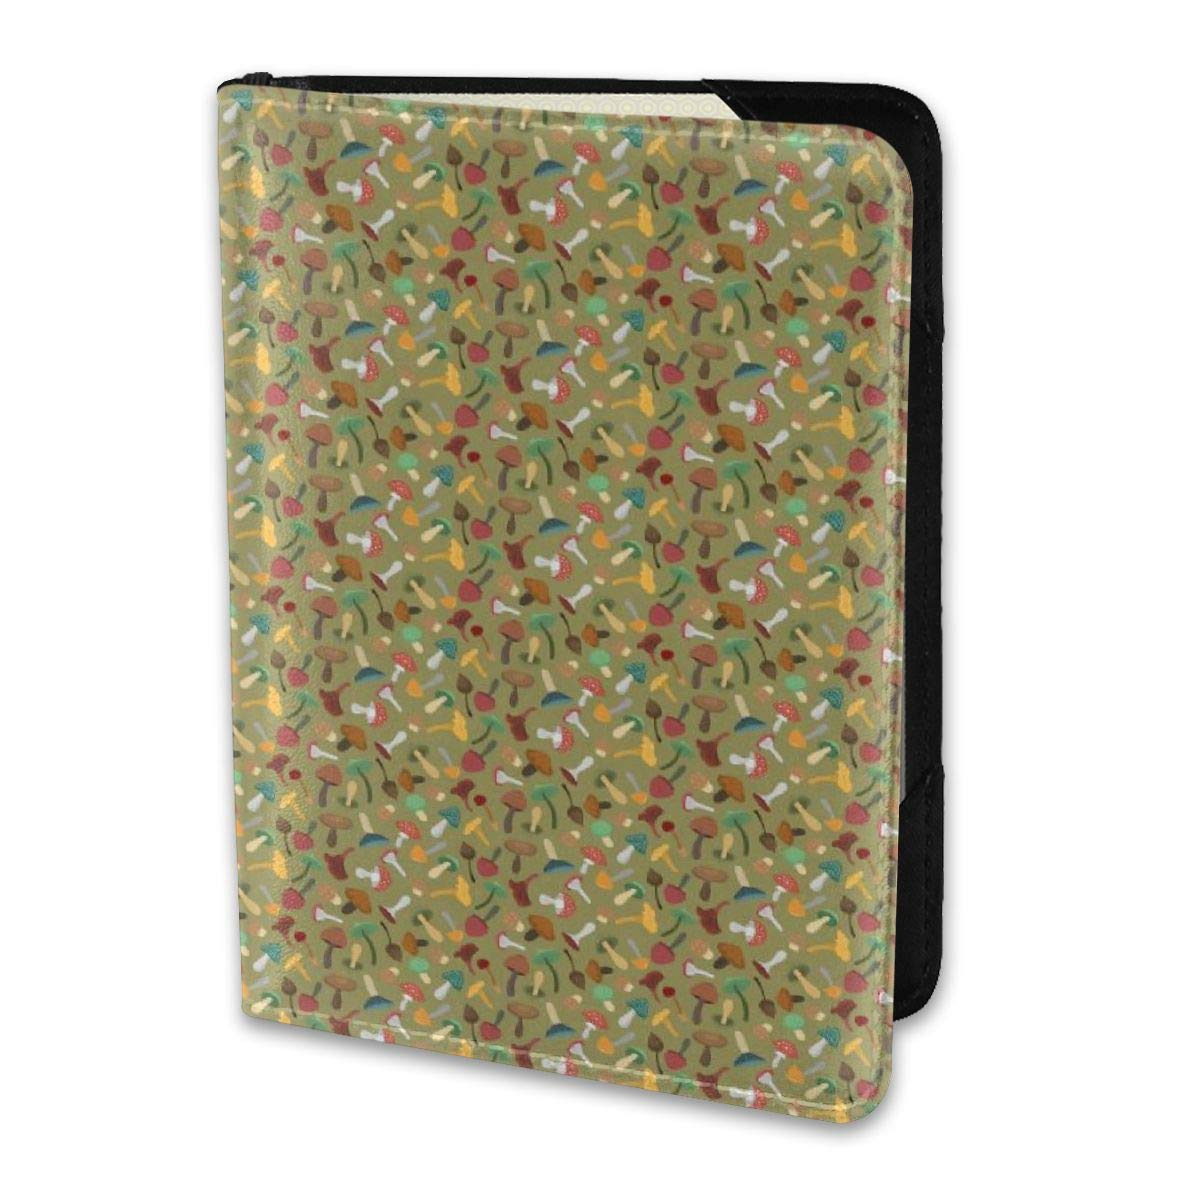 Biahos Leather Passport Cover Mini Cute Mushrooms Colorful Wallet For Passport Case